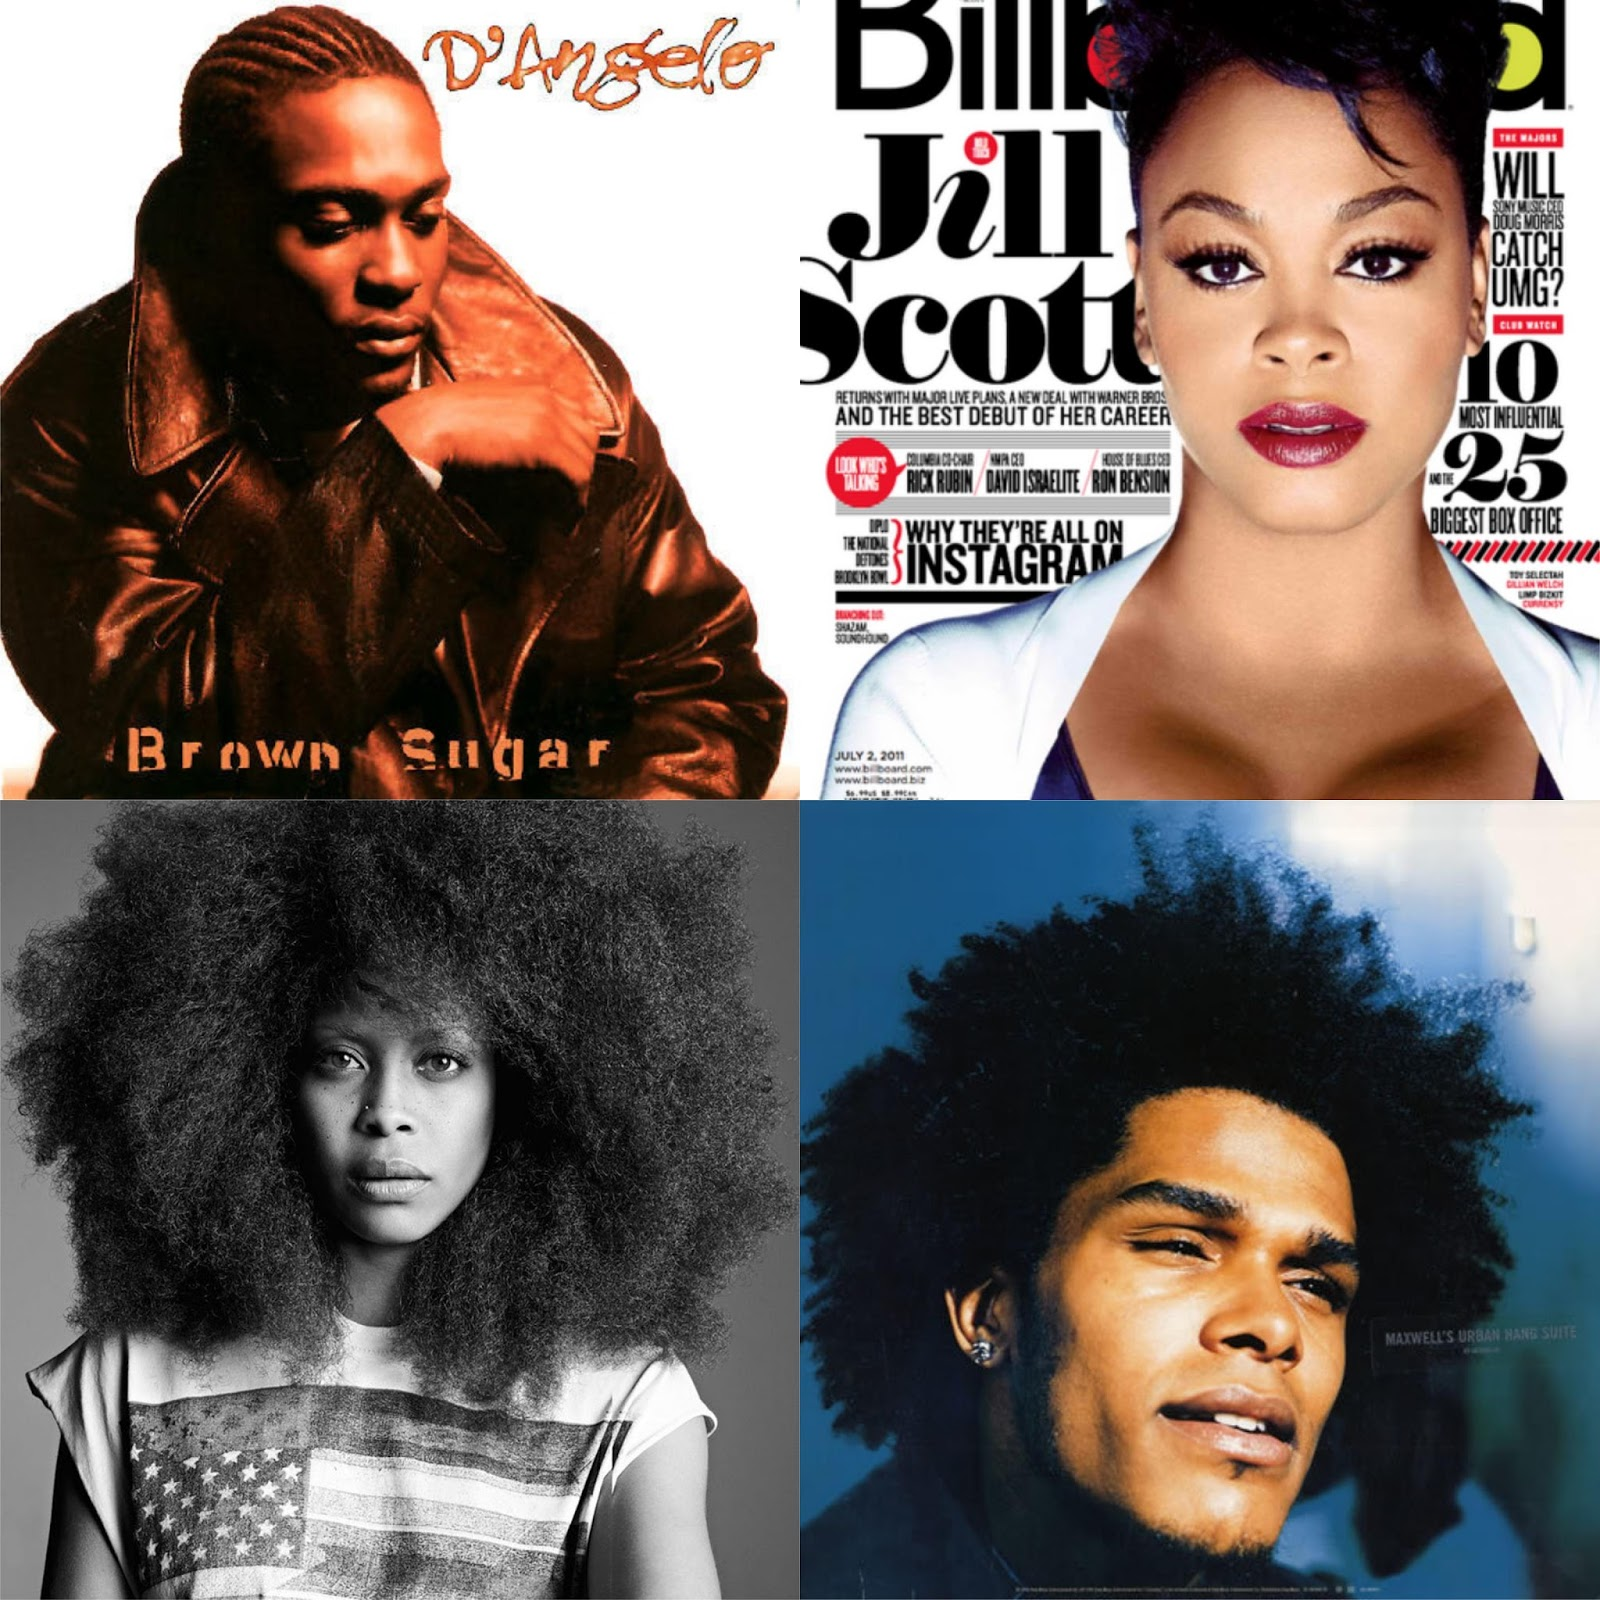 DAR Music: The 6 Greatest Neo-Soul Artists